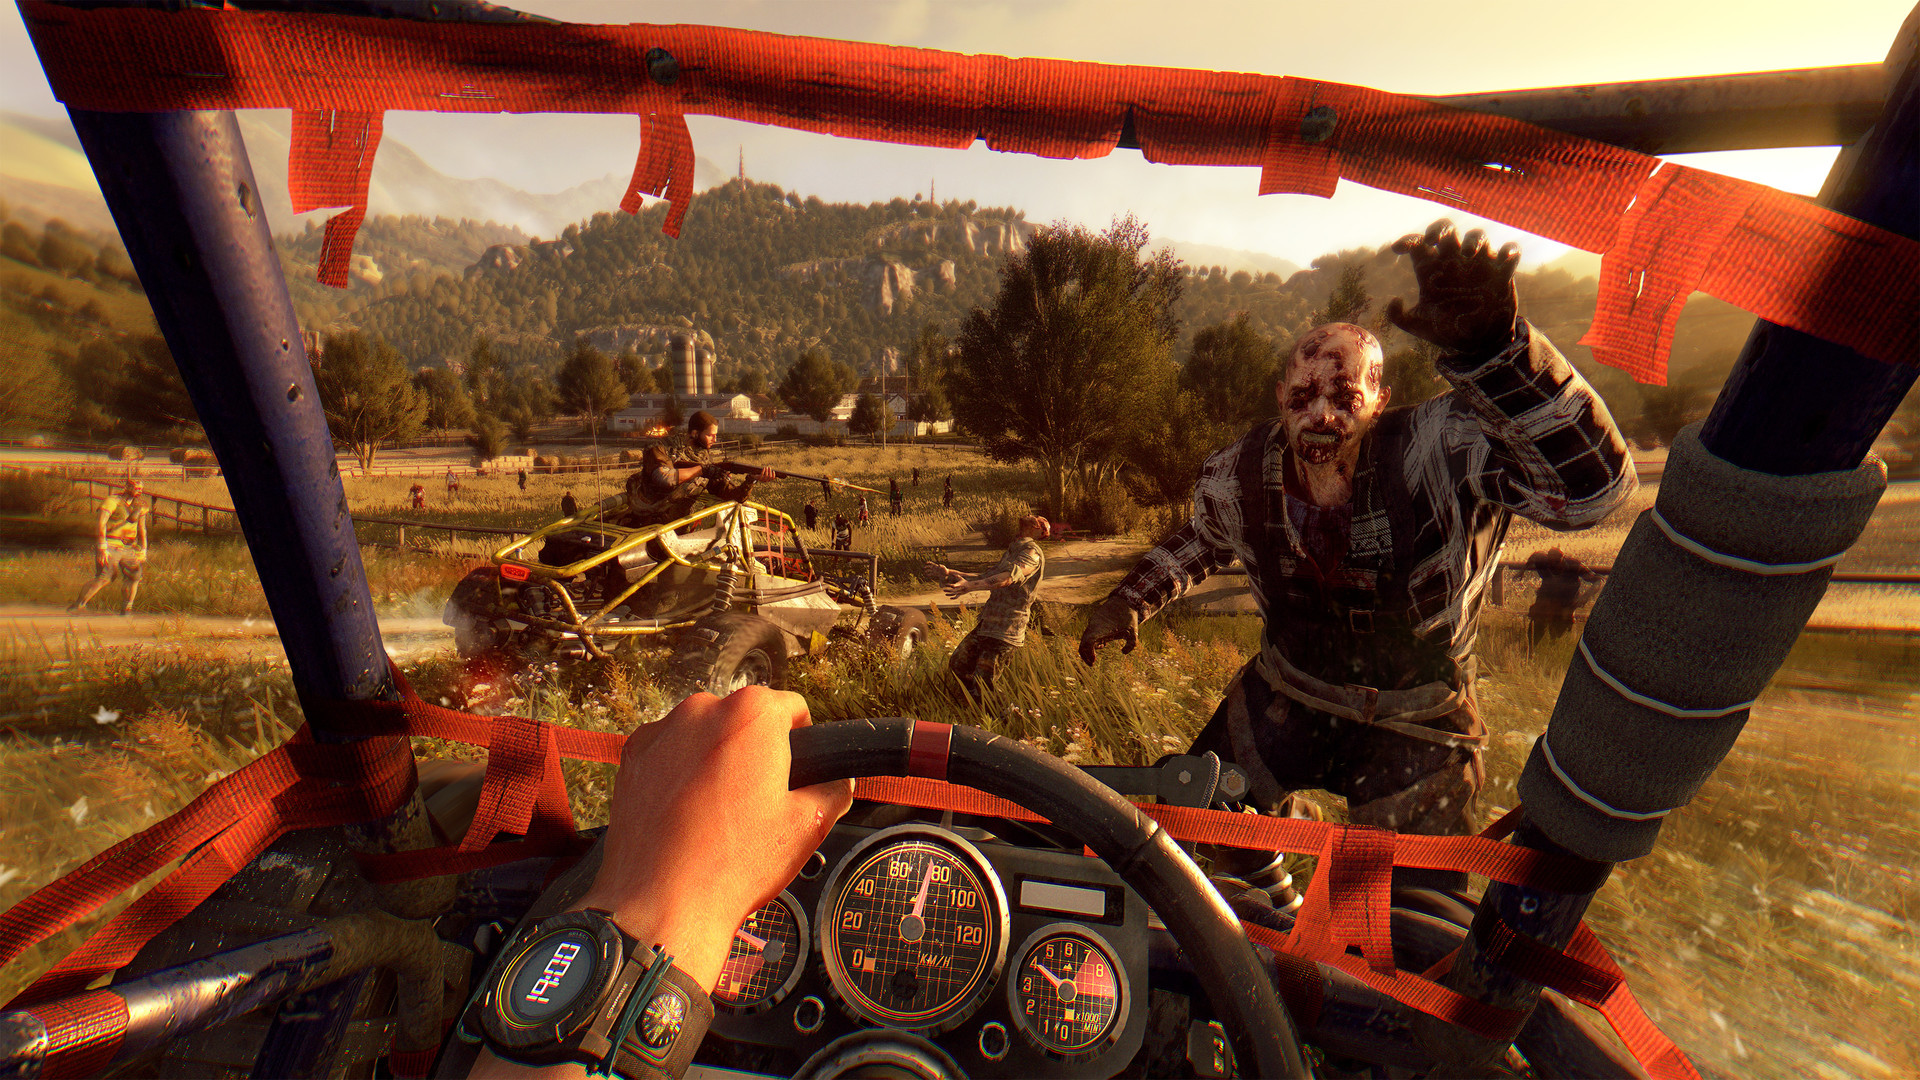 download dying light the following enhanced edition reinforcements-reloaded cracked full version singlelink iso rar multi language free for pc